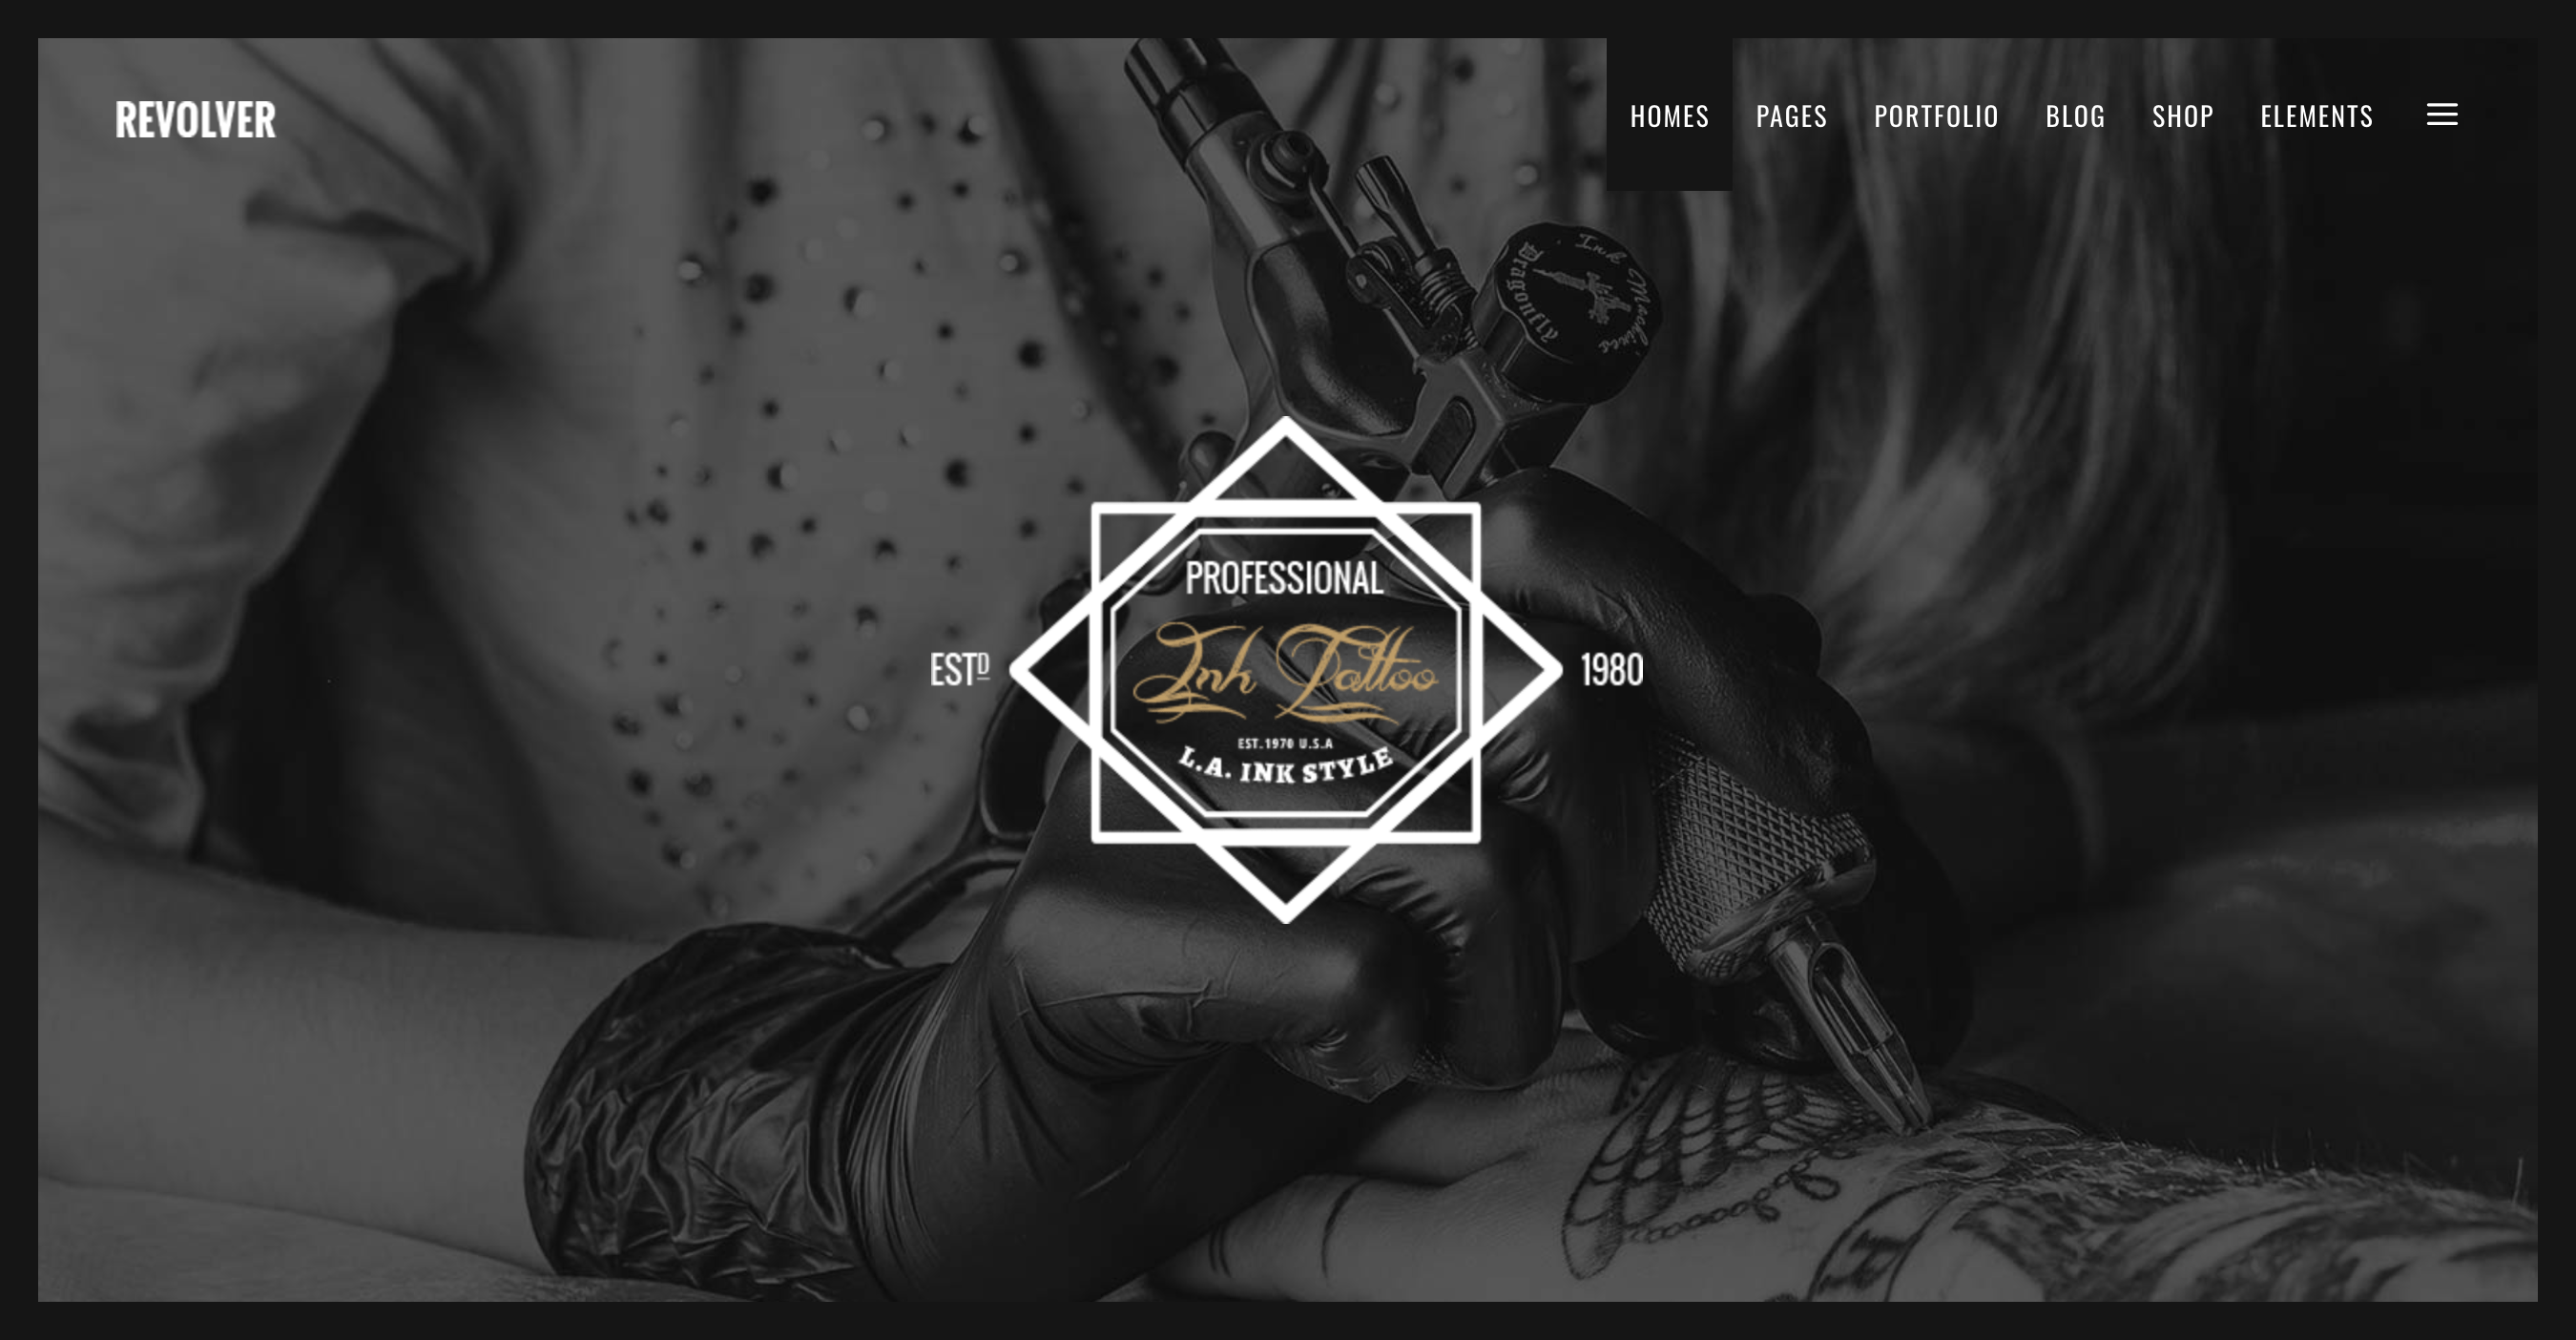 Revolver - A Gentlemen's Theme for Tattoo Salons, Barbershops, Pubs and Biker Clubs.png